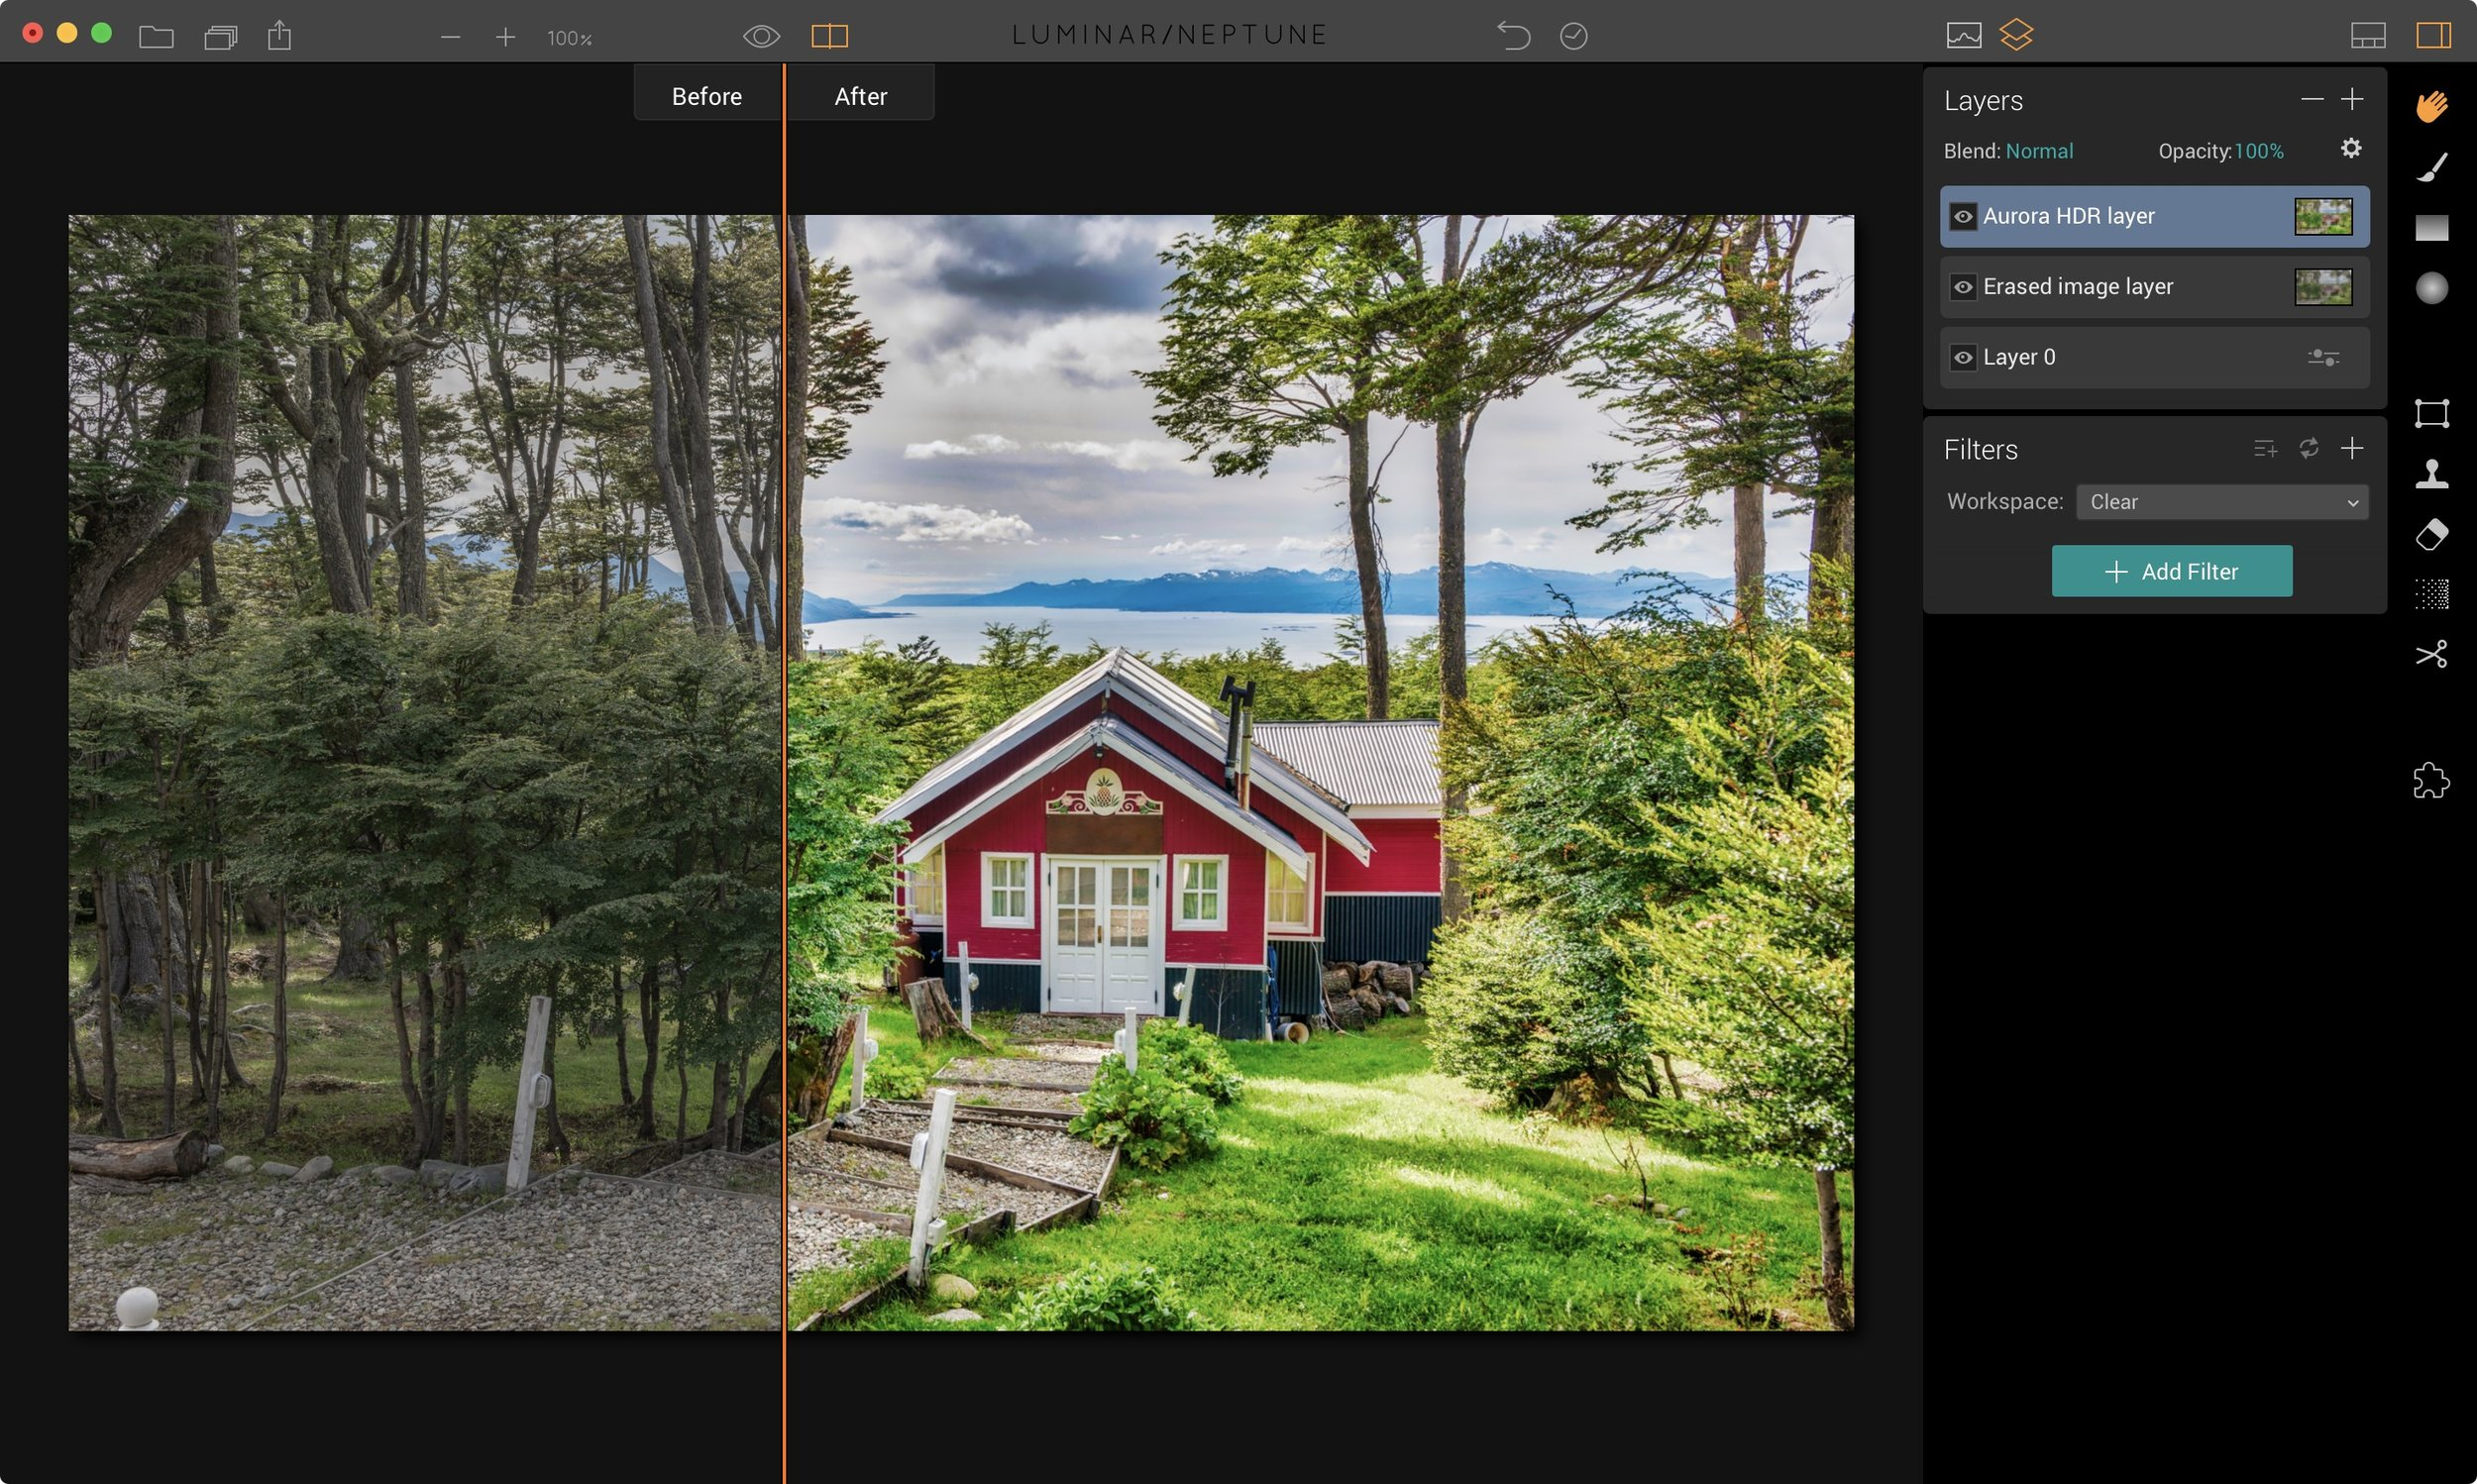 Luminar : Round trips to other Macphun apps like Aurora HDR are added as a new layer